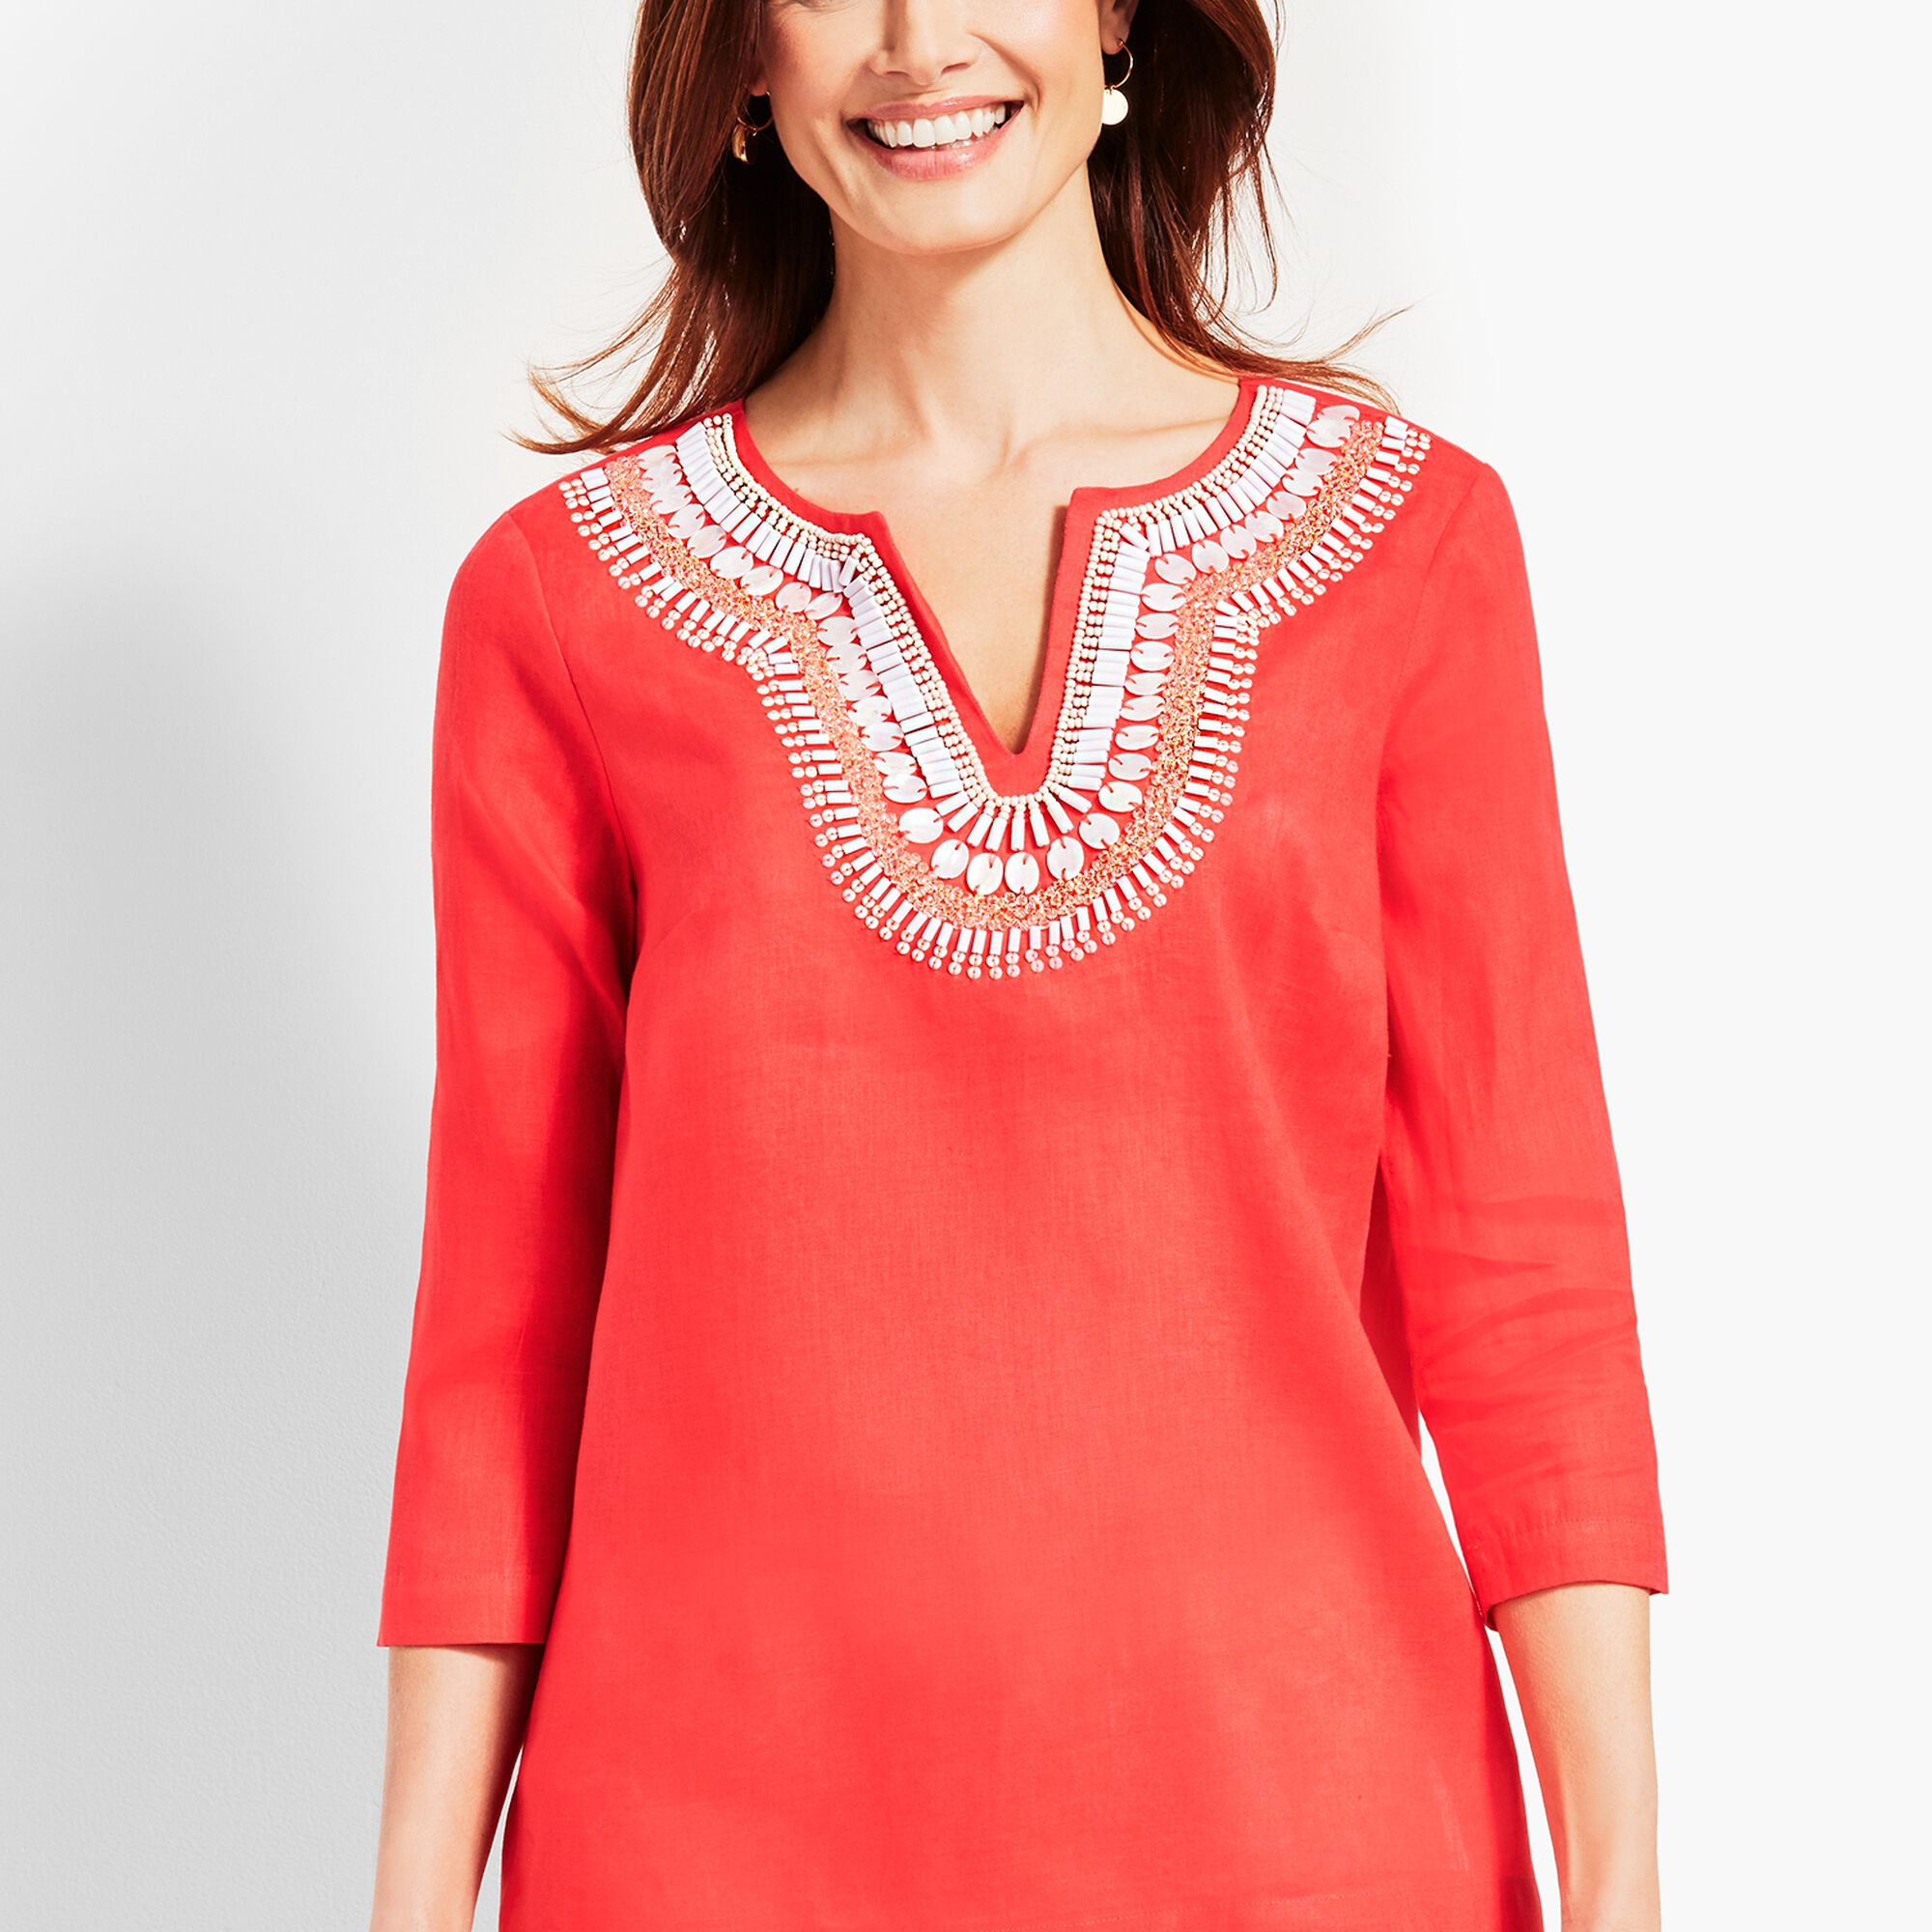 77e4dcce388 Shell-Embellished Linen Tunic Top Opens a New Window.